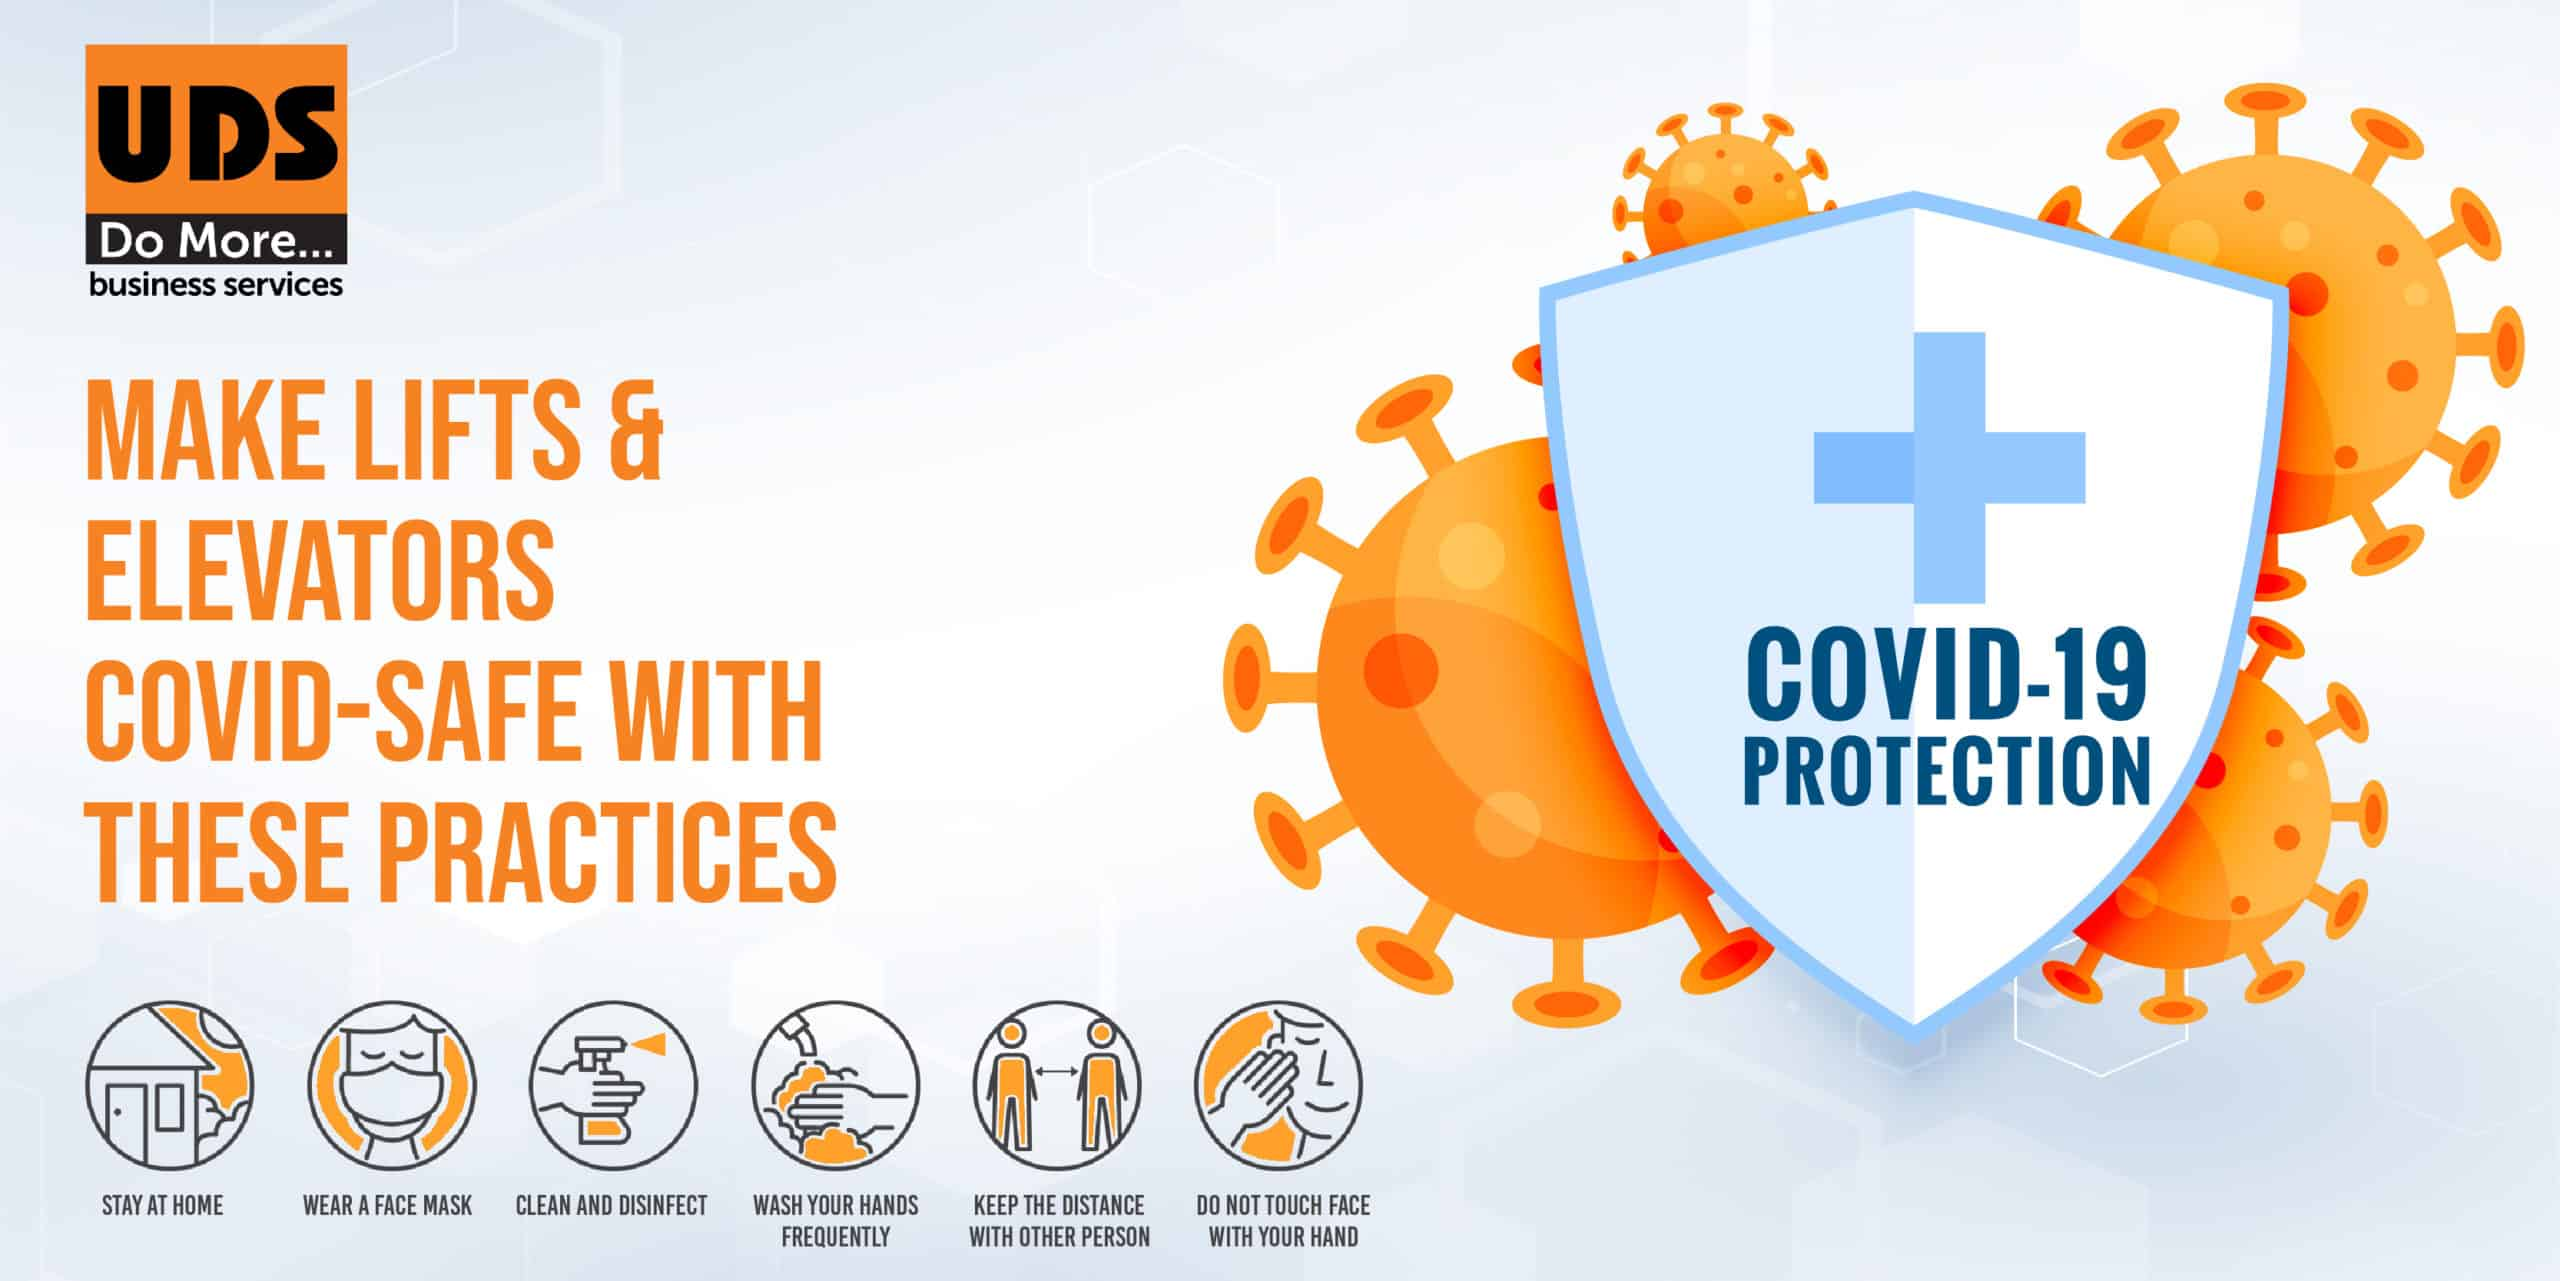 Precautions advised by a top facility management company in India to avoid contracting Covid-19 infections